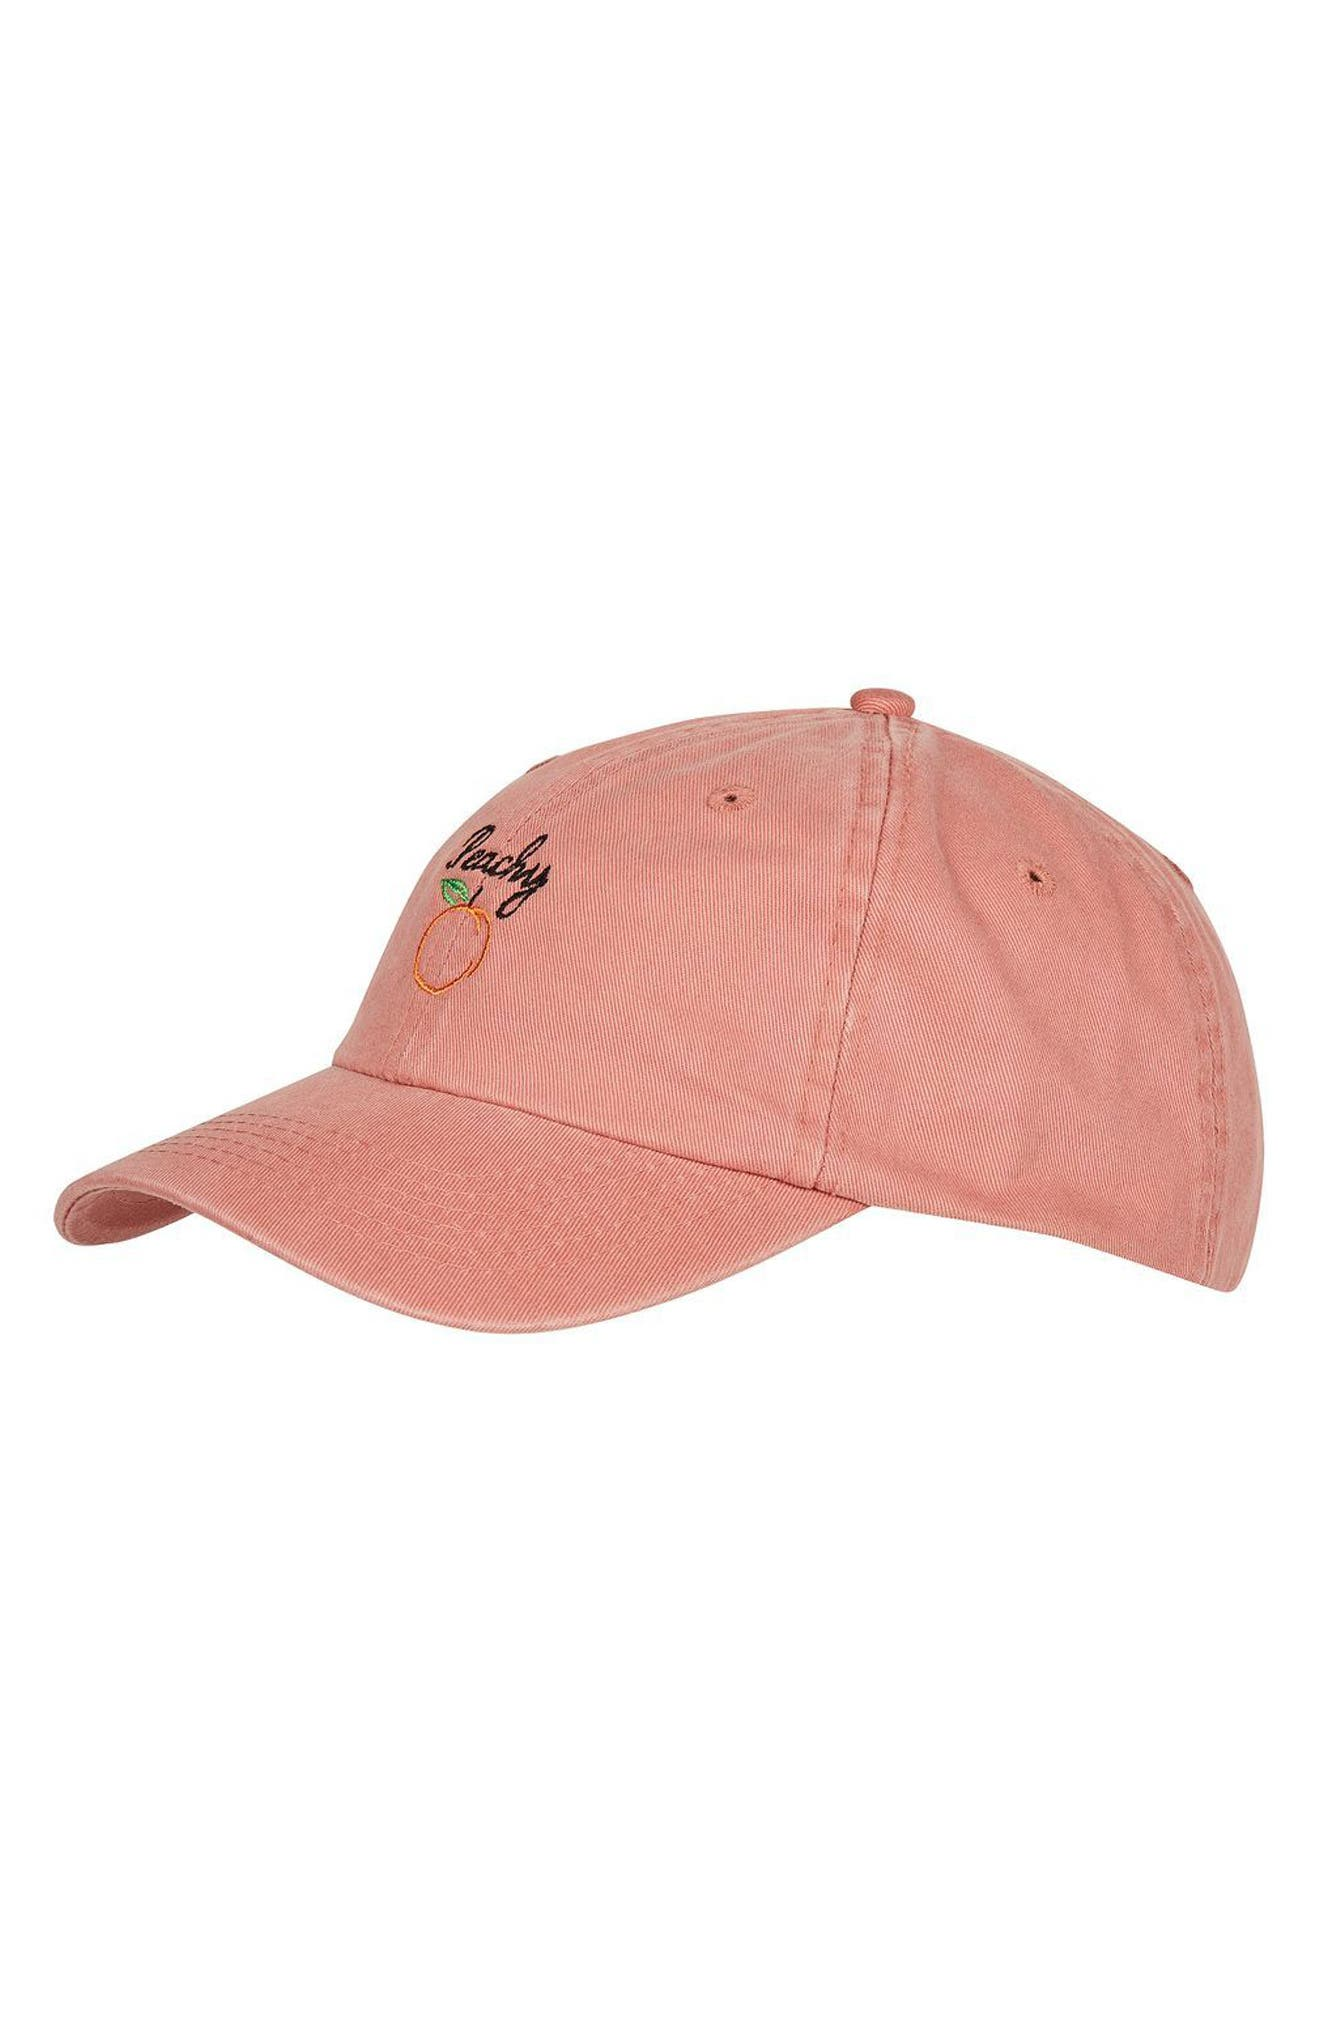 Topshop Peachy Embroidered Ball Cap